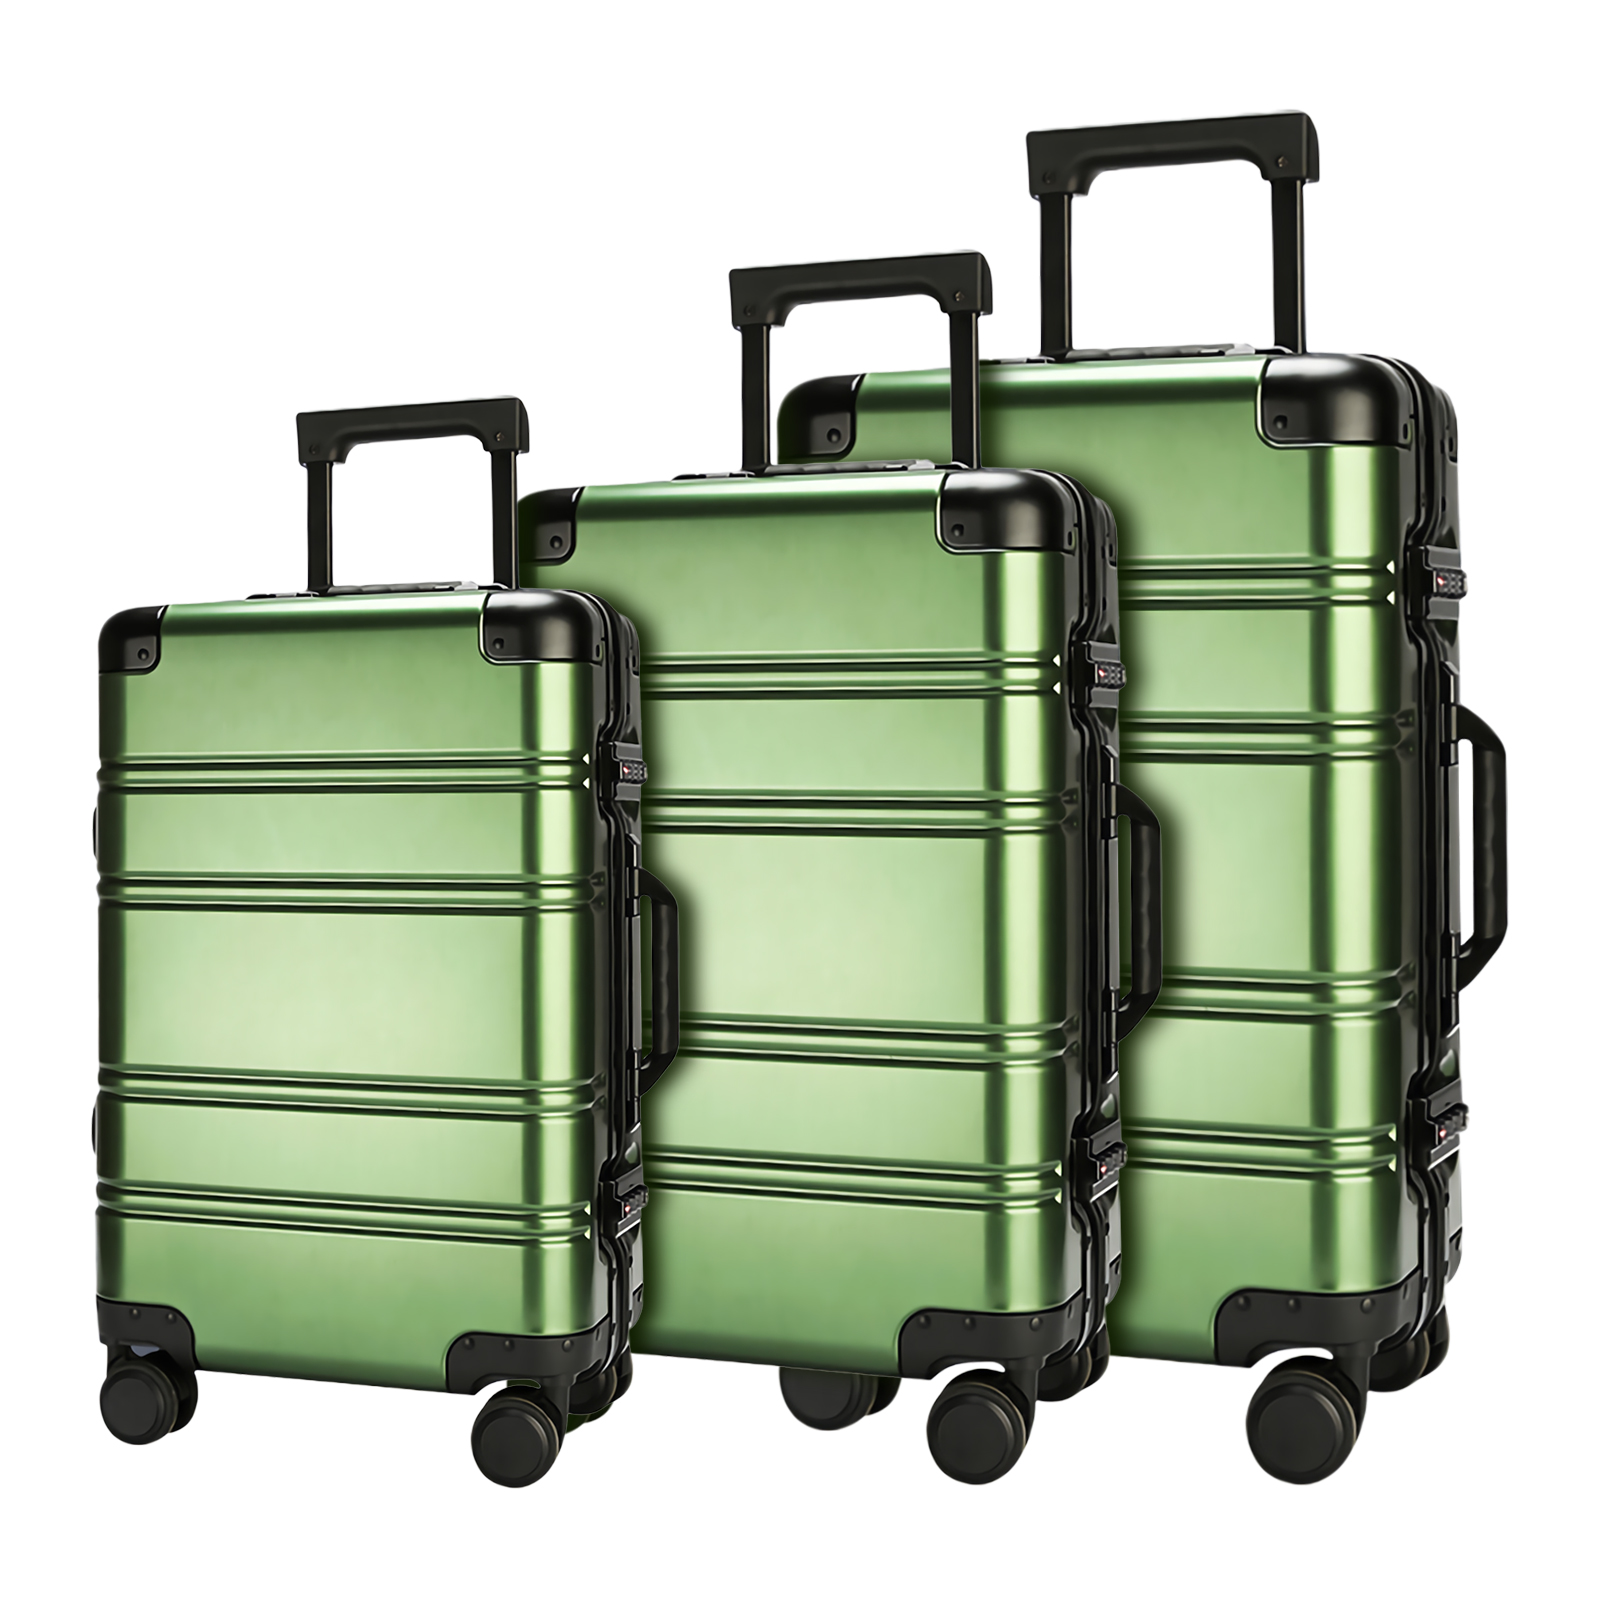 Aluminum-magnesium alloy trolley luggage-HTYS-M06-Greatchip